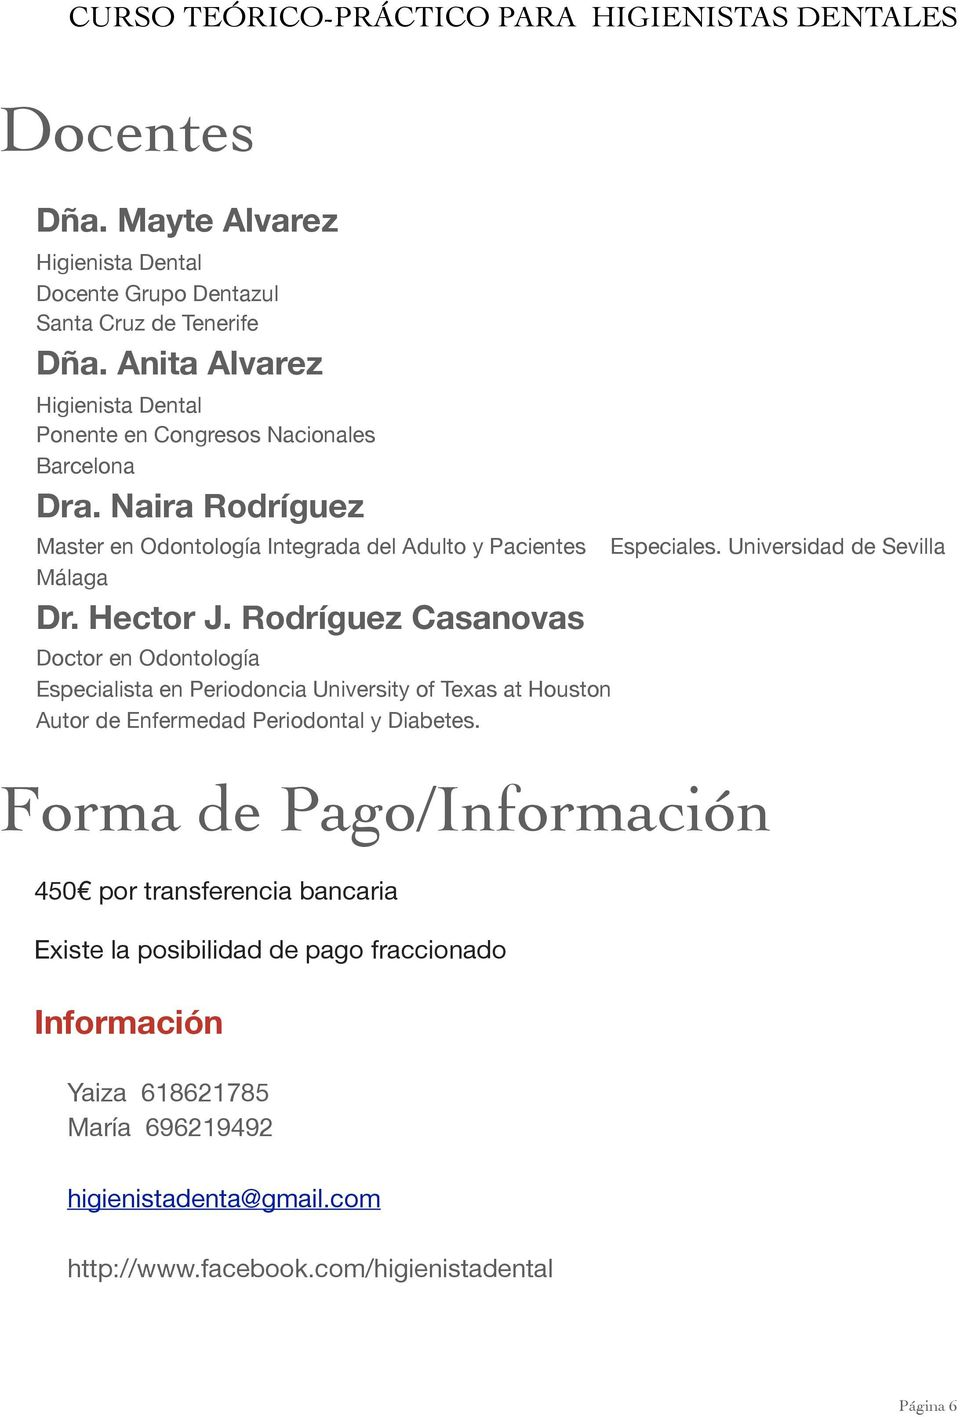 Hector J. Rodríguez Casanovas Doctor en Odontología Especialista en Periodoncia University of Texas at Houston Autor de Enfermedad Periodontal y Diabetes. Especiales.